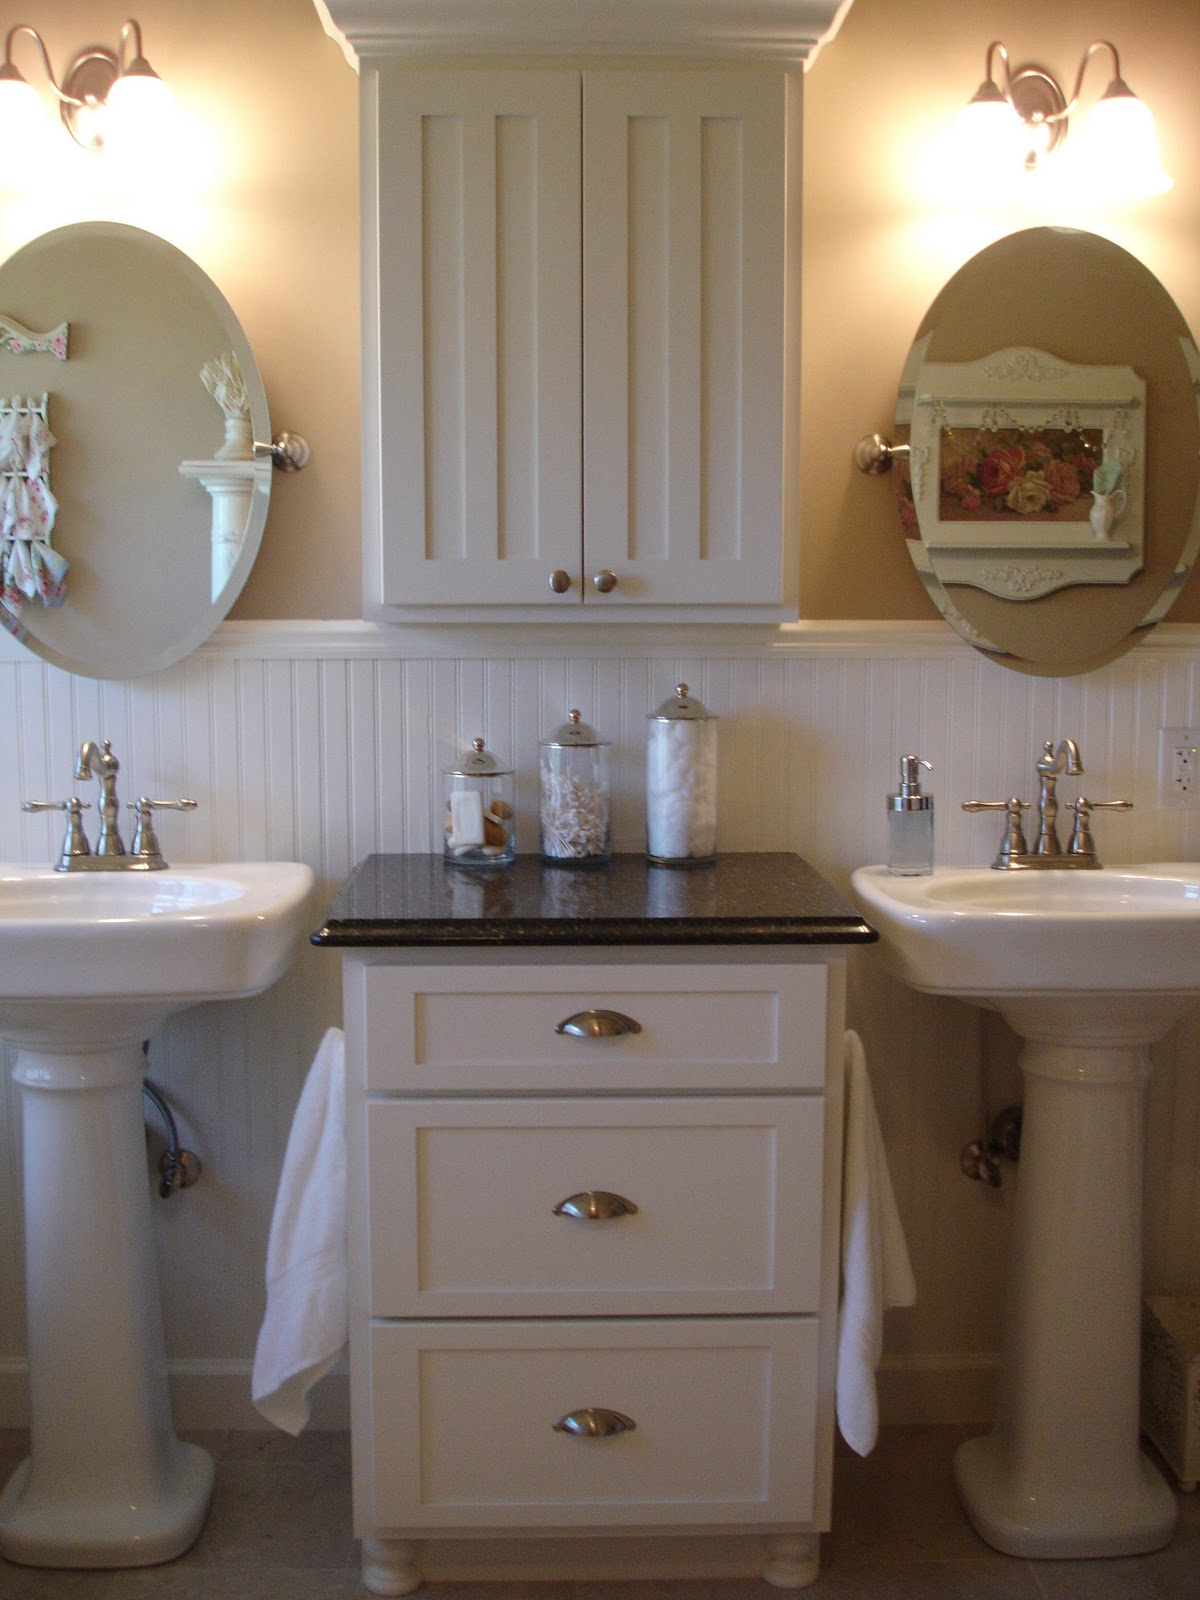 Forever decorating my master bathroom update - Master bath vanity design ideas ...